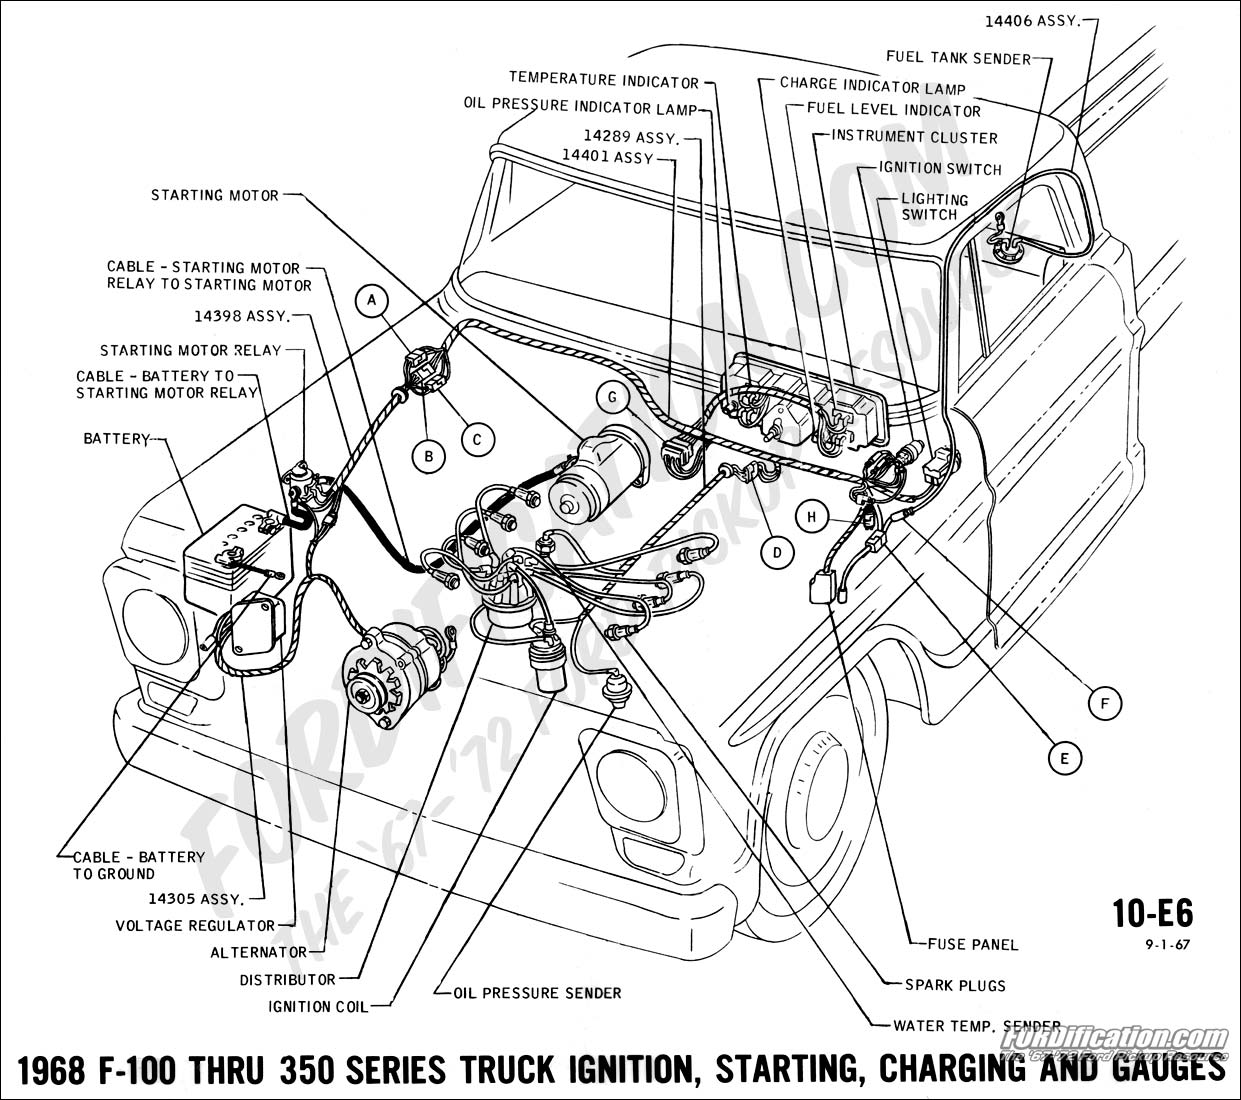 1968 f-100 thru f-350 ignition, starting, charging and gauges